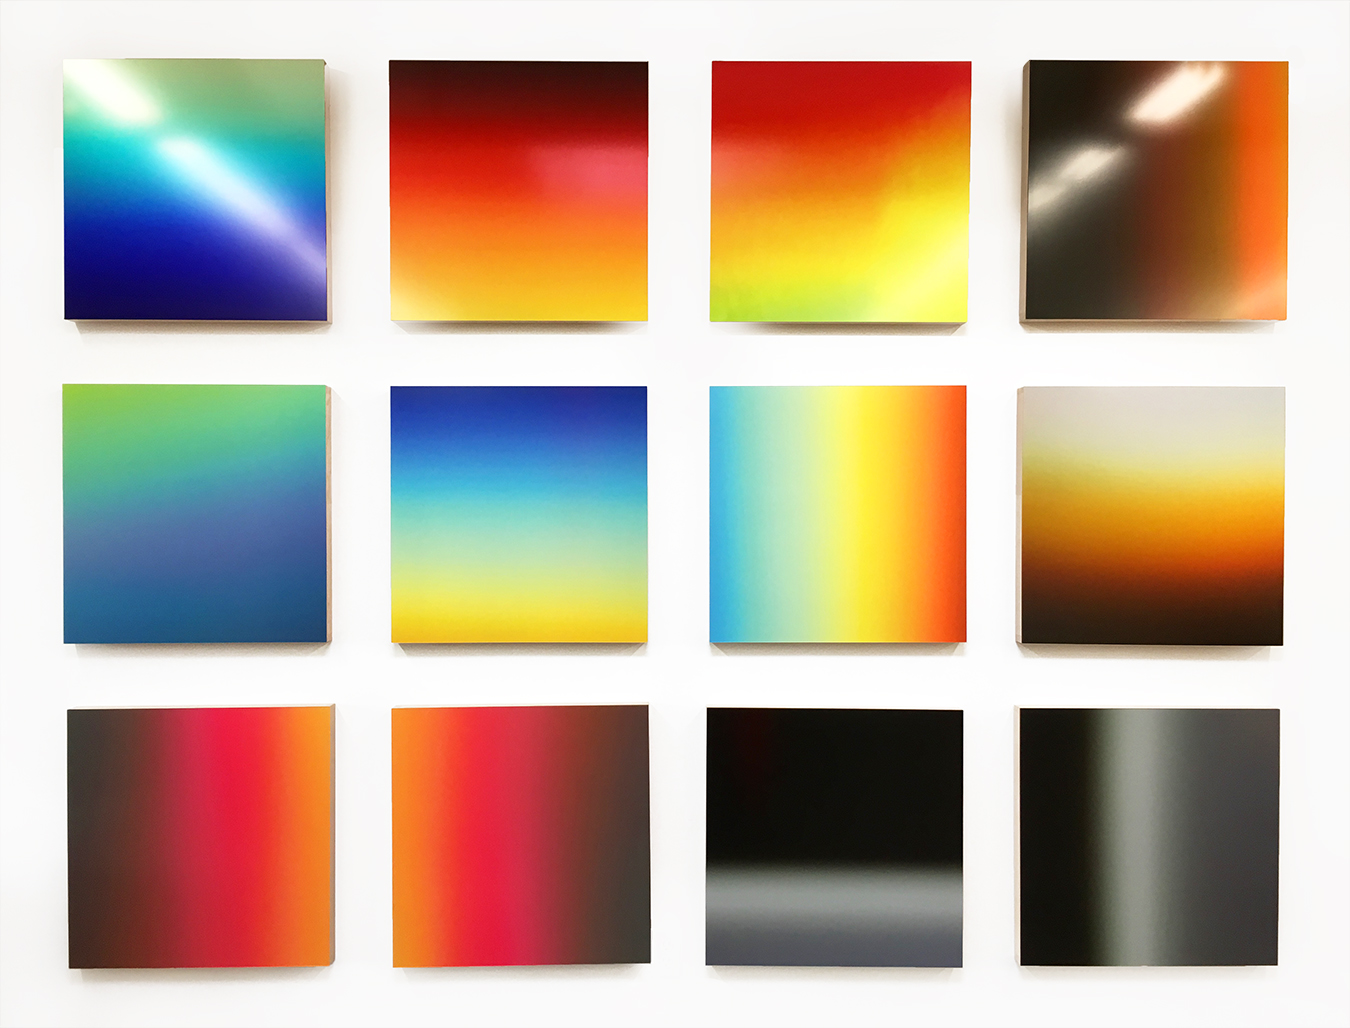 Fawn_Rogers_Visible_Light_Grid.jpg